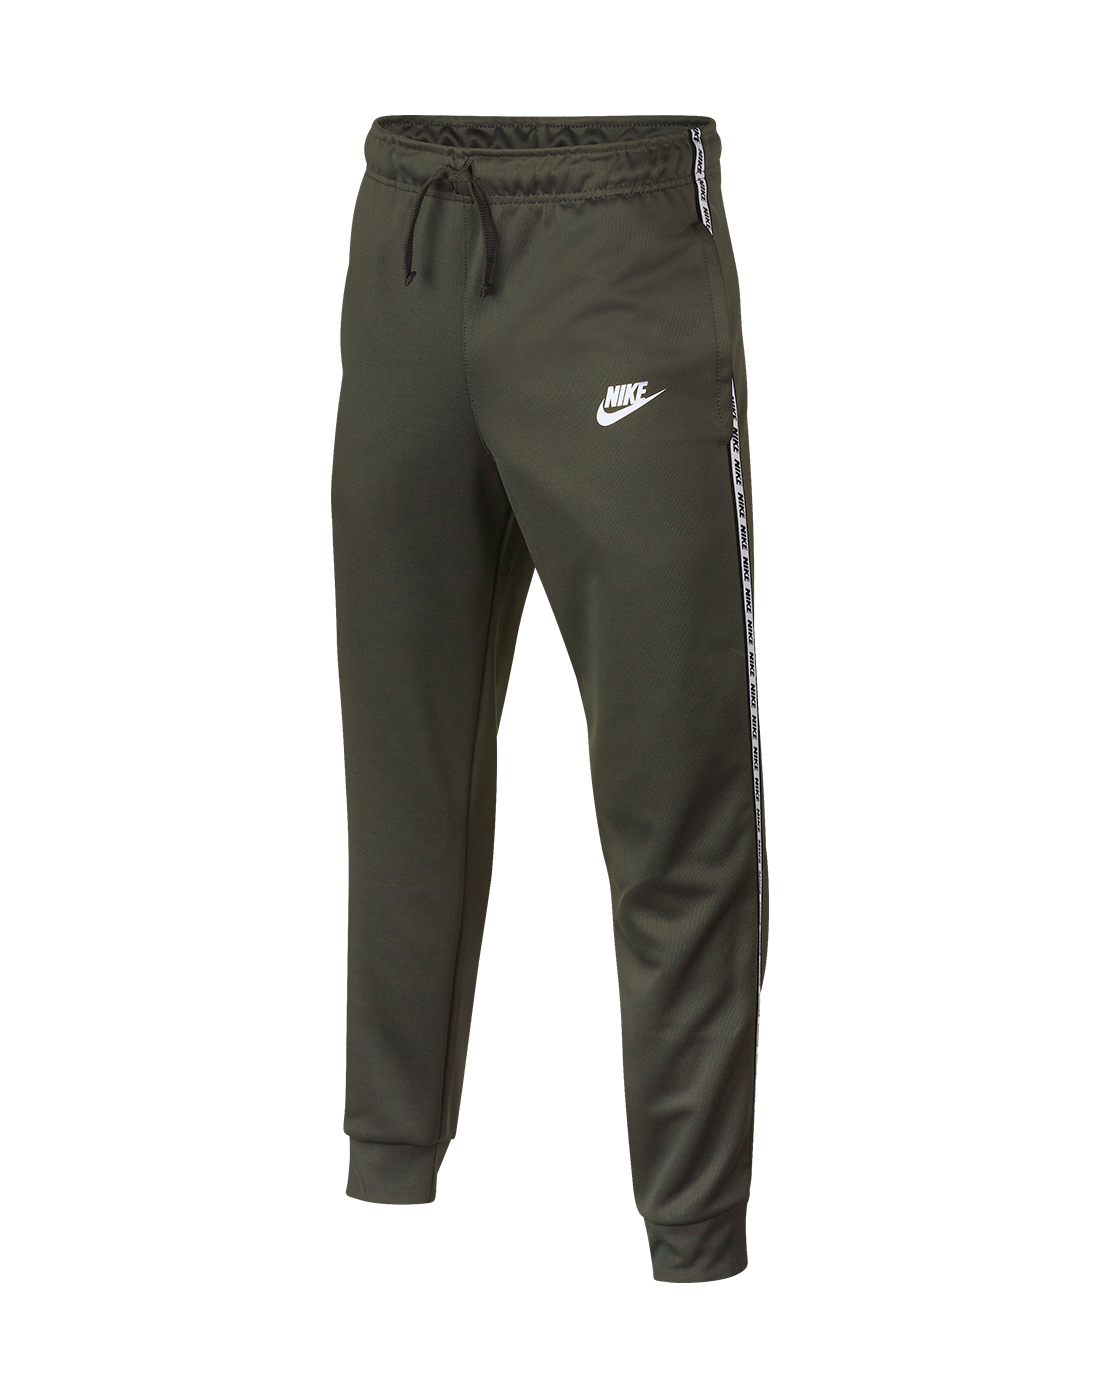 95141d32a Boy's Green Nike Repeat Tape Pants | Life Style Sports